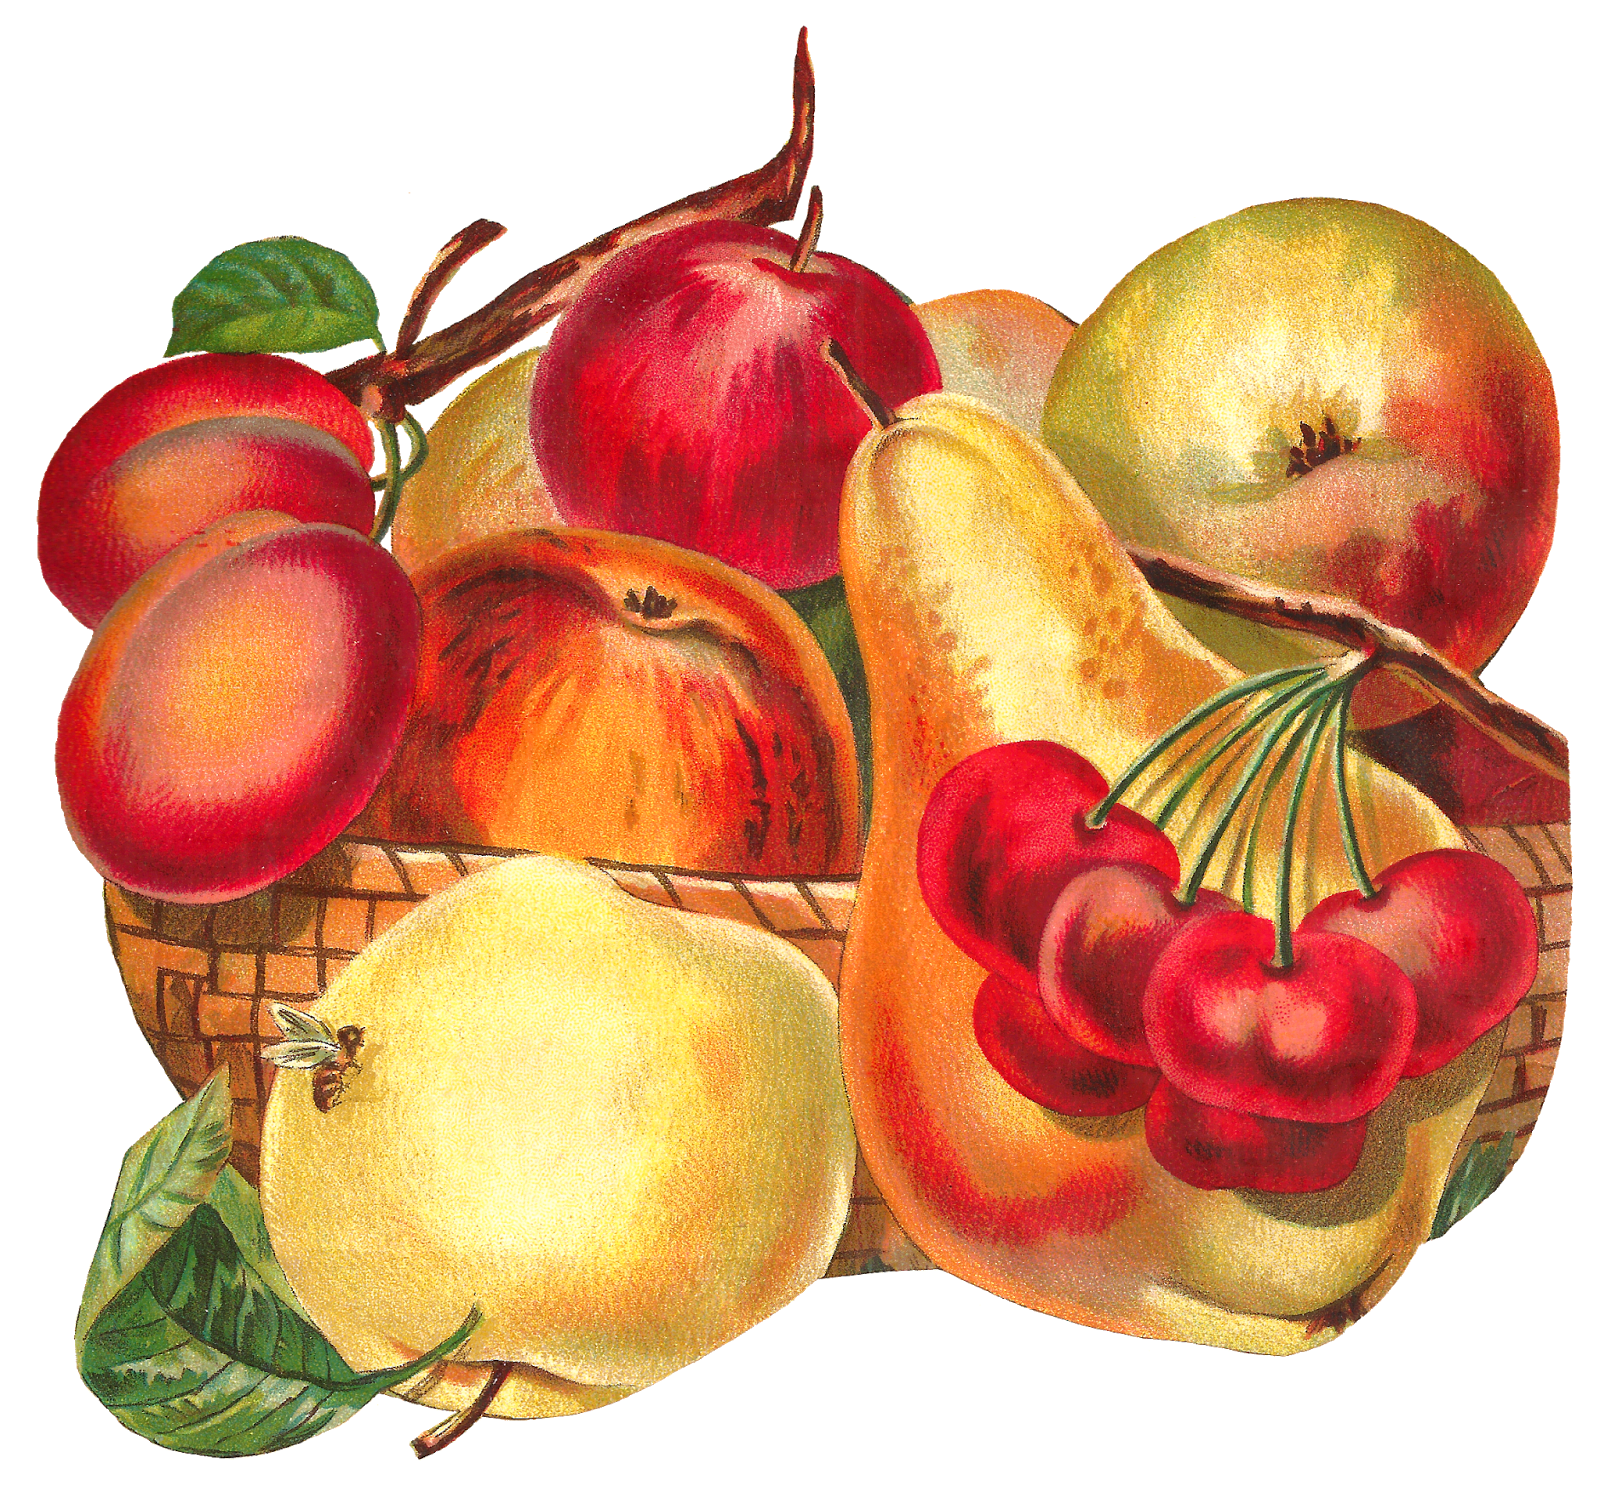 Clipart apple butter image library fruit-basket-image-apple-pear-plum-clipart-artwork-png.png (PNG-kuva ... image library